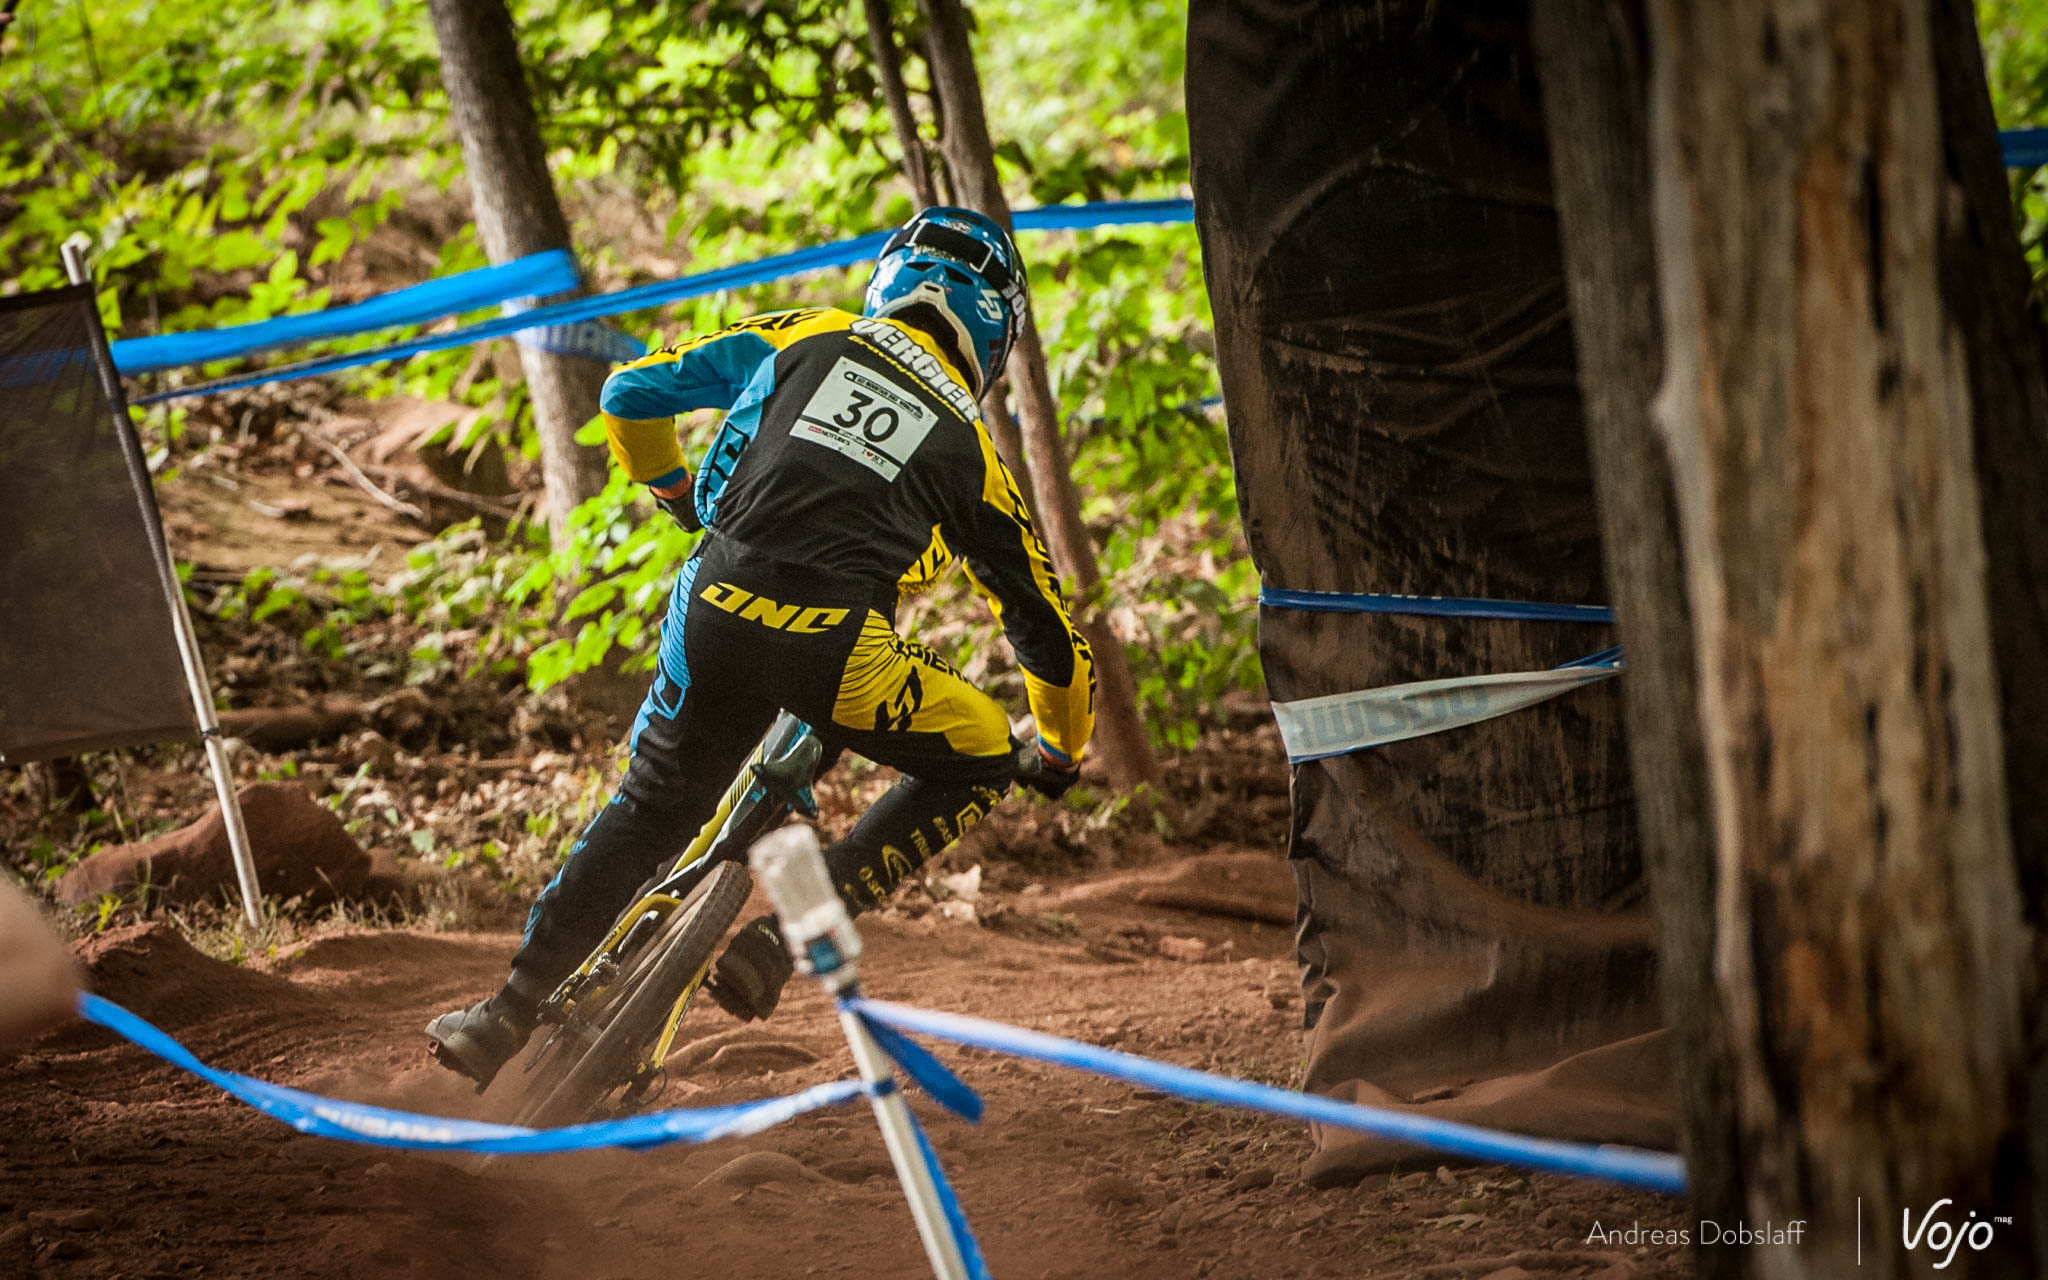 World_Cup_DH_men_homme_Windham_2015_Copyright_Dobslaff_VojoMag-5